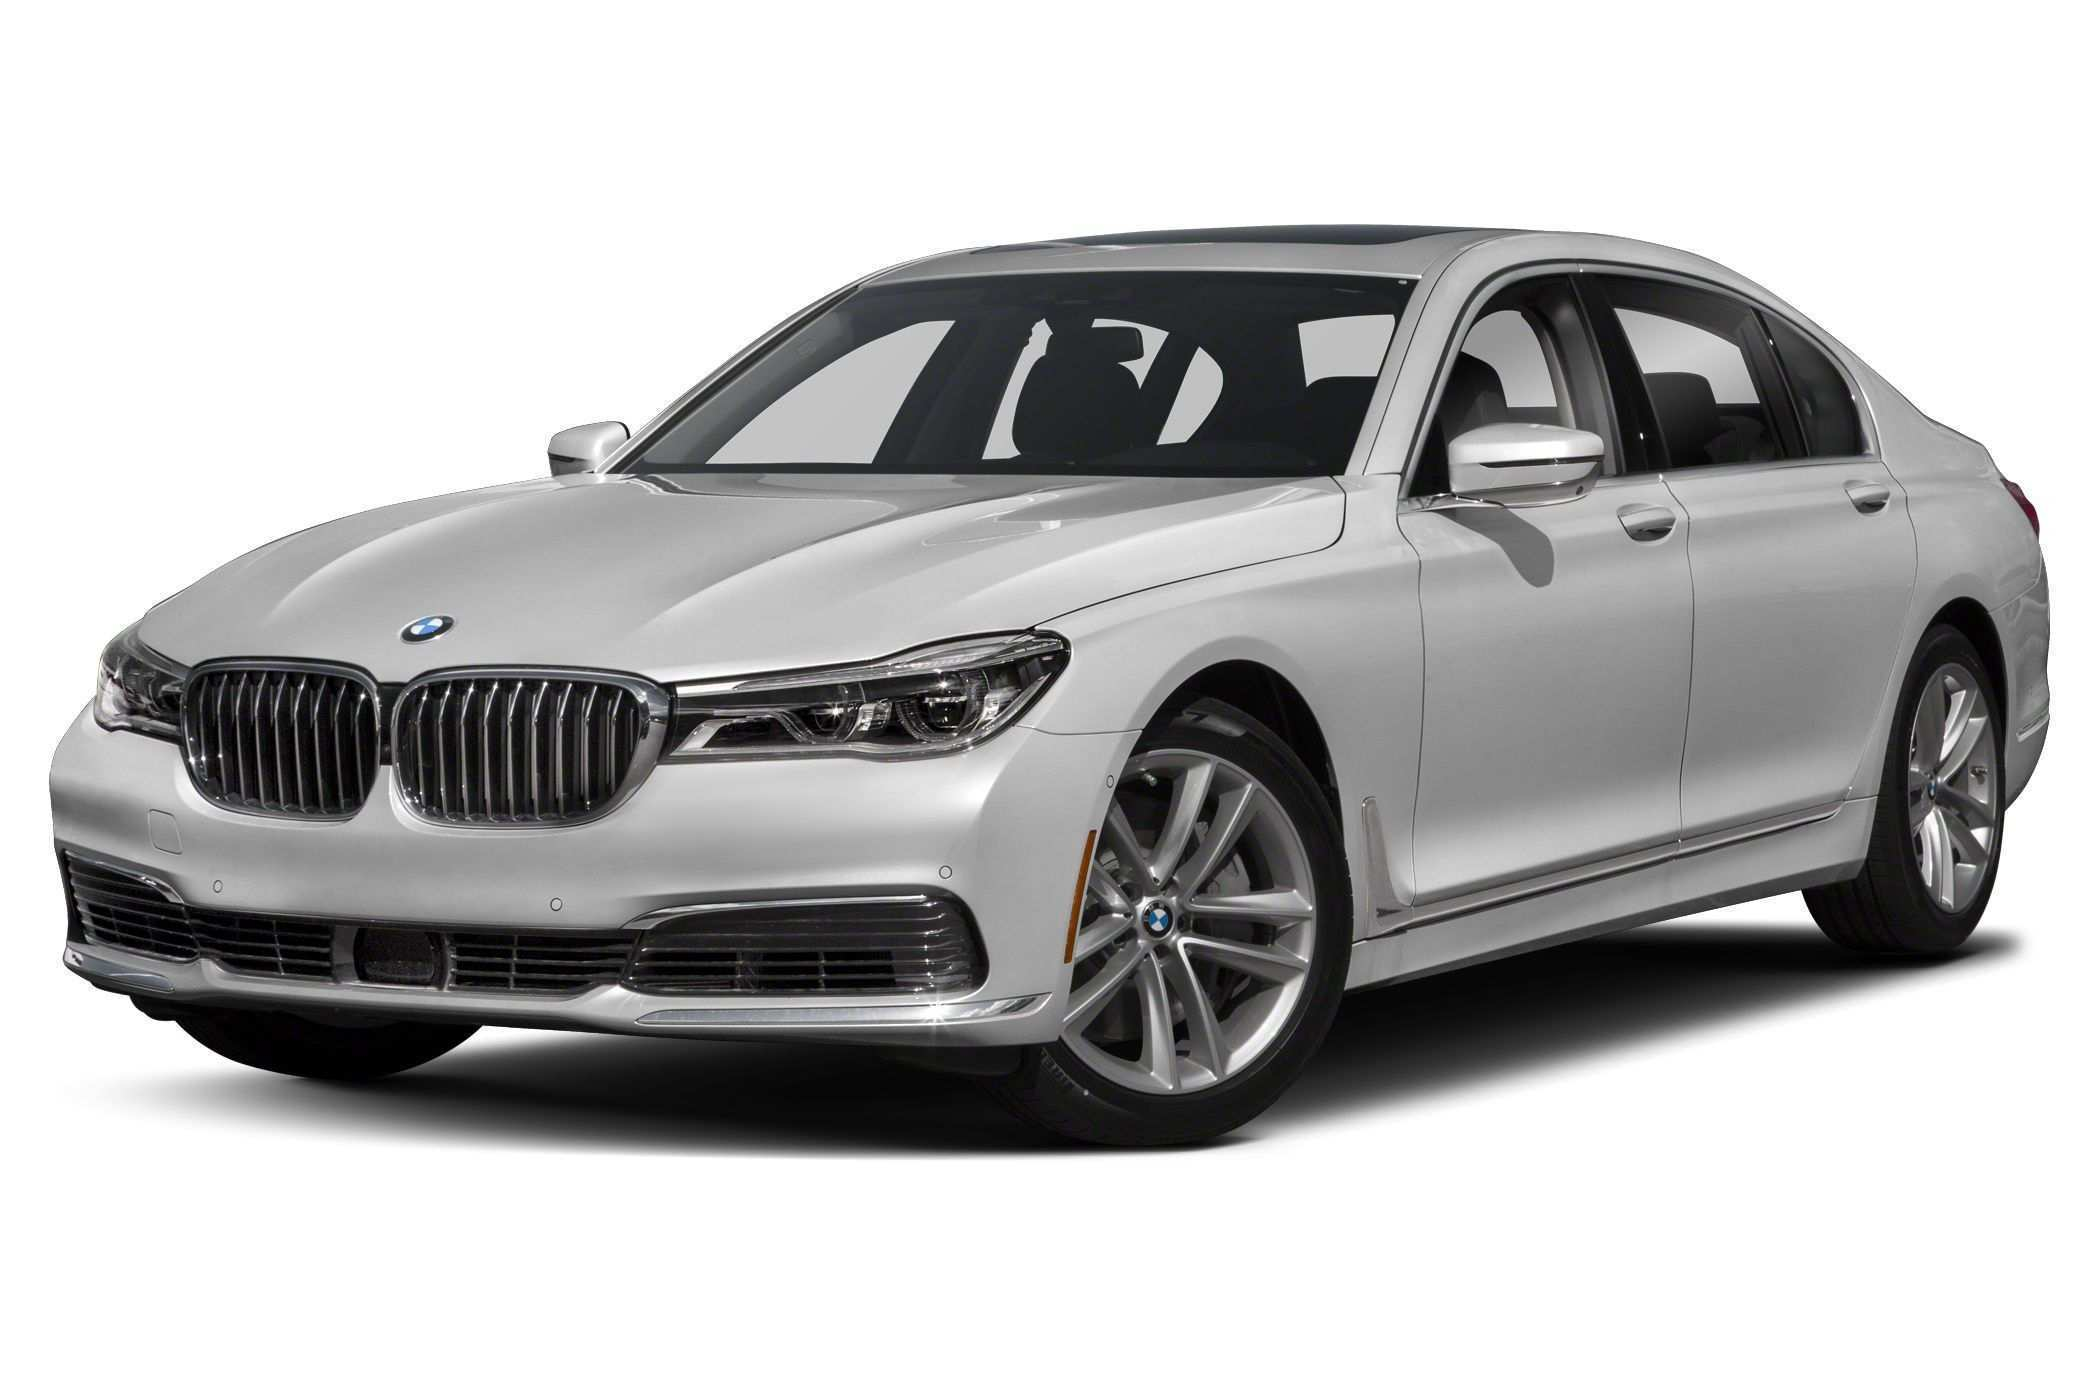 61 New 2020 BMW 7 Series Perfection New Price And Review